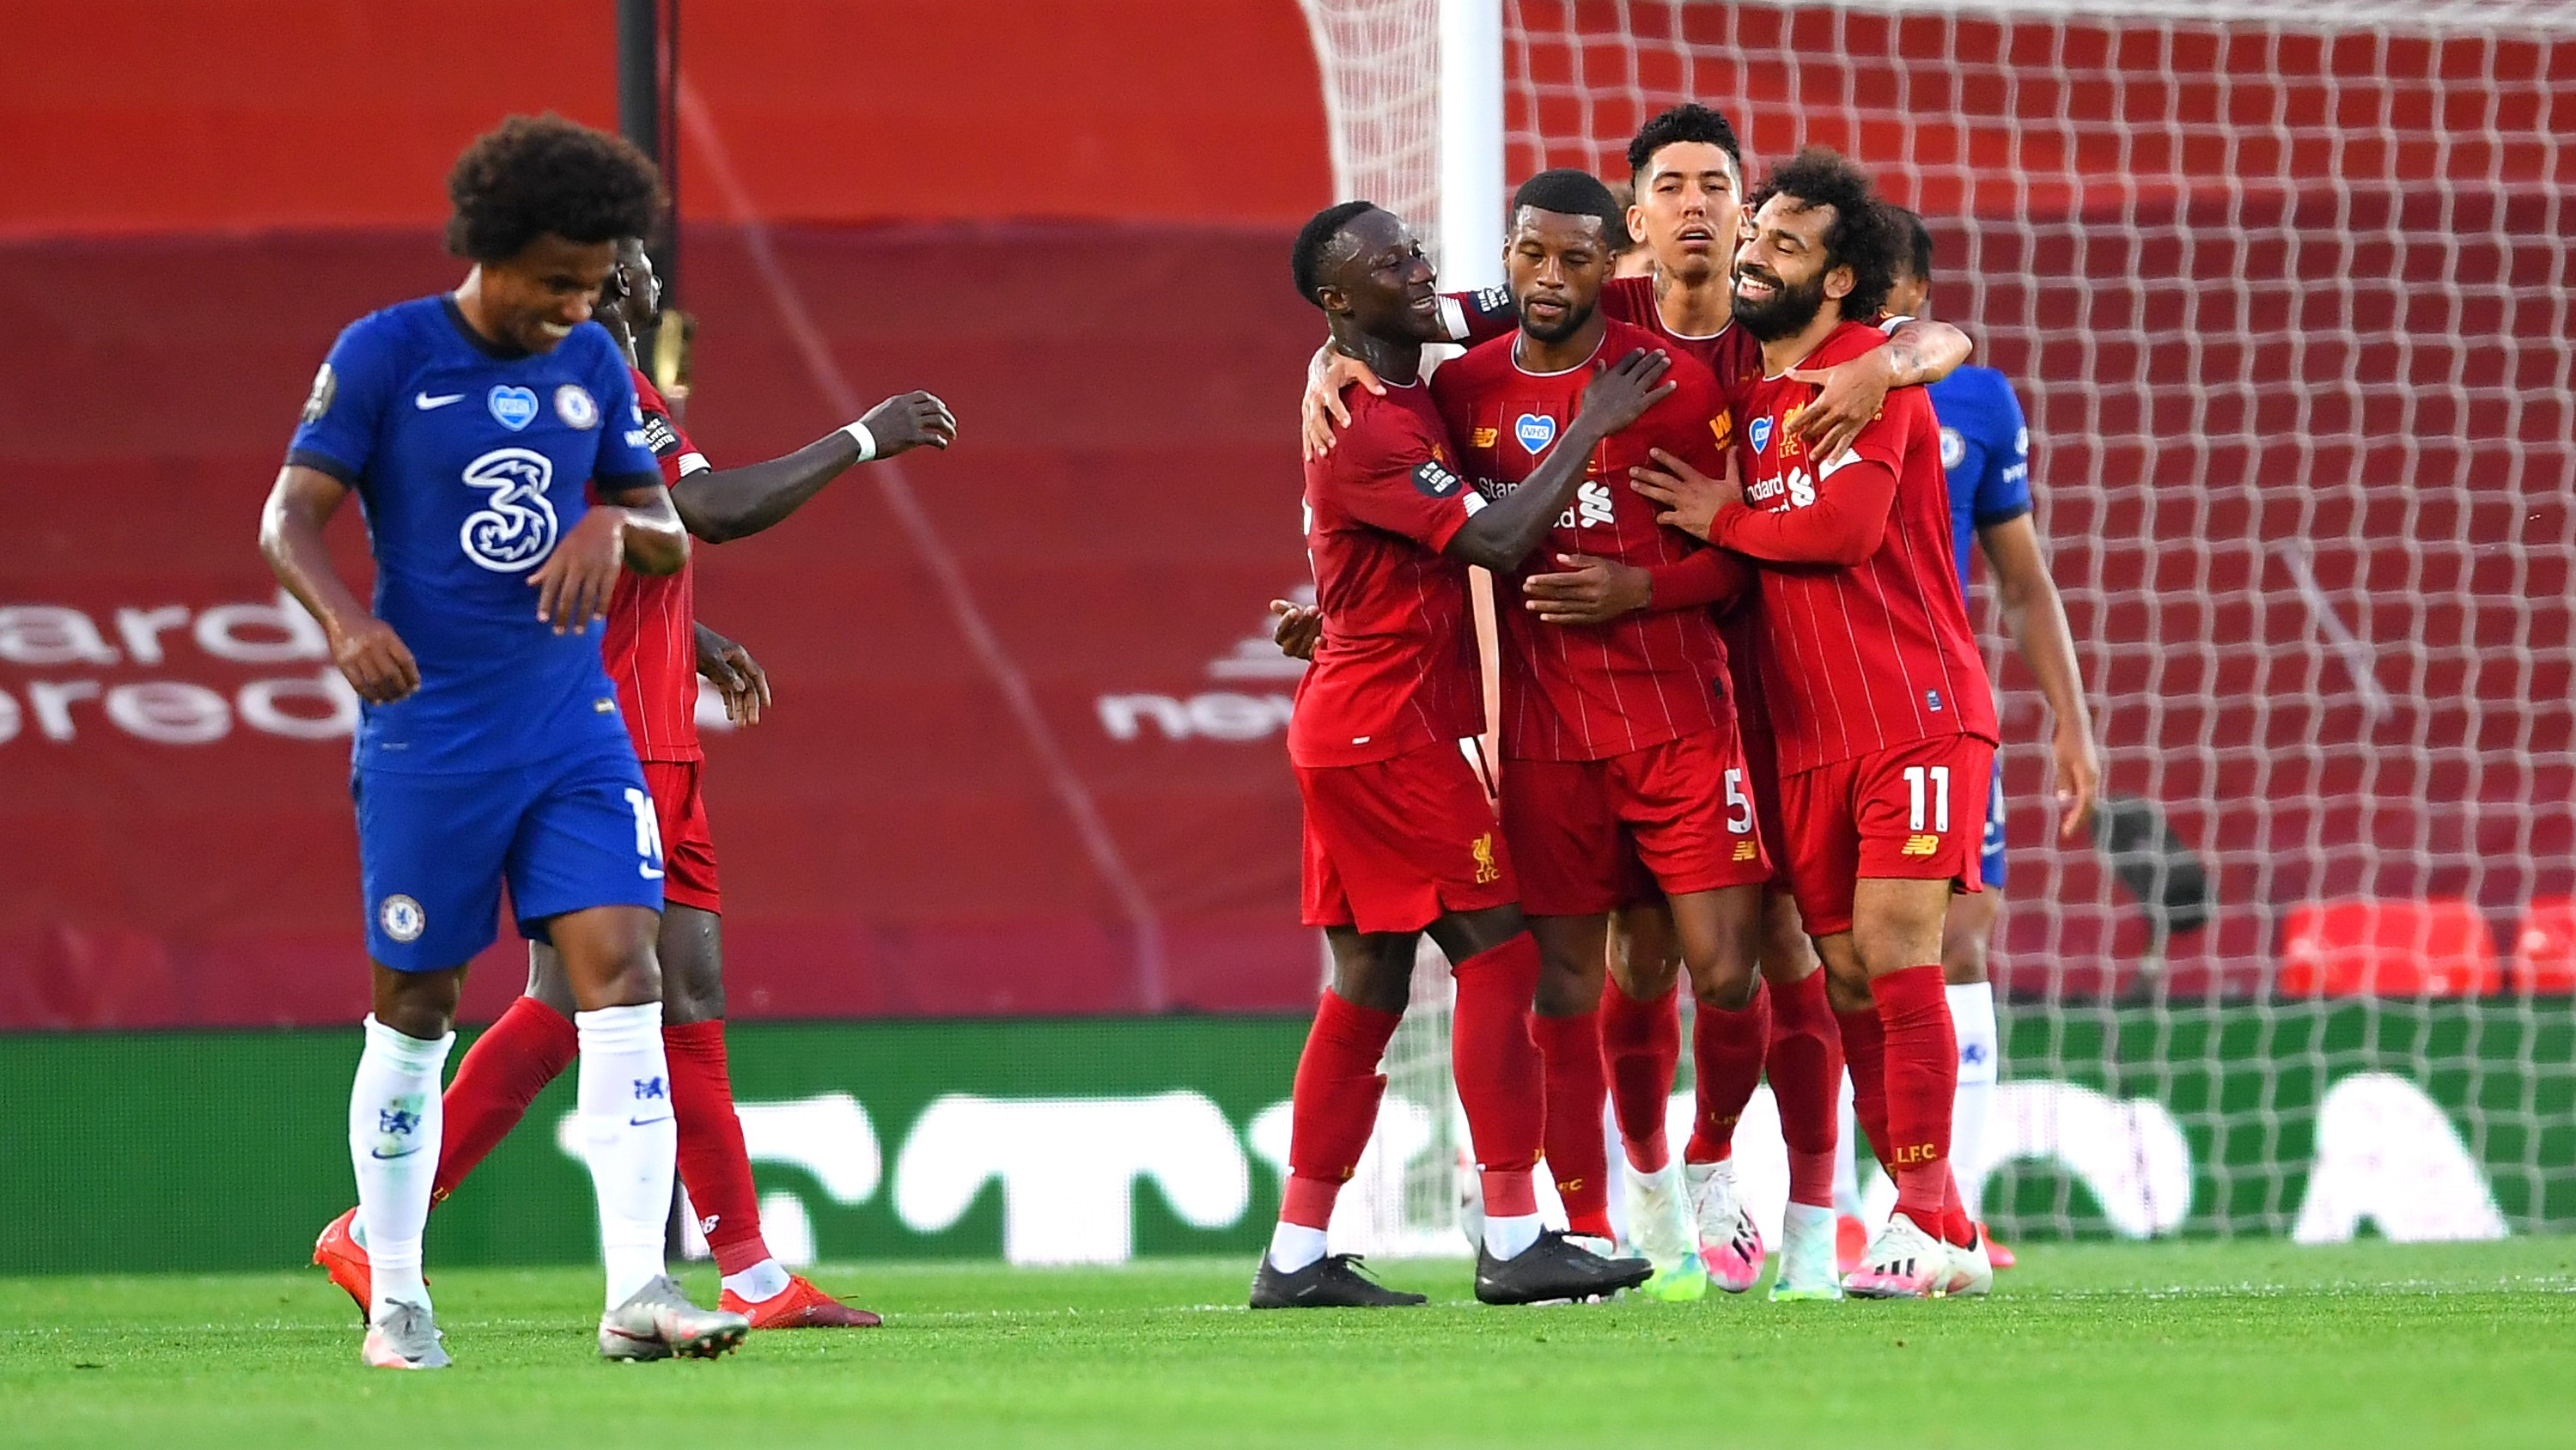 Liverpool beat Chelsea to start title defense